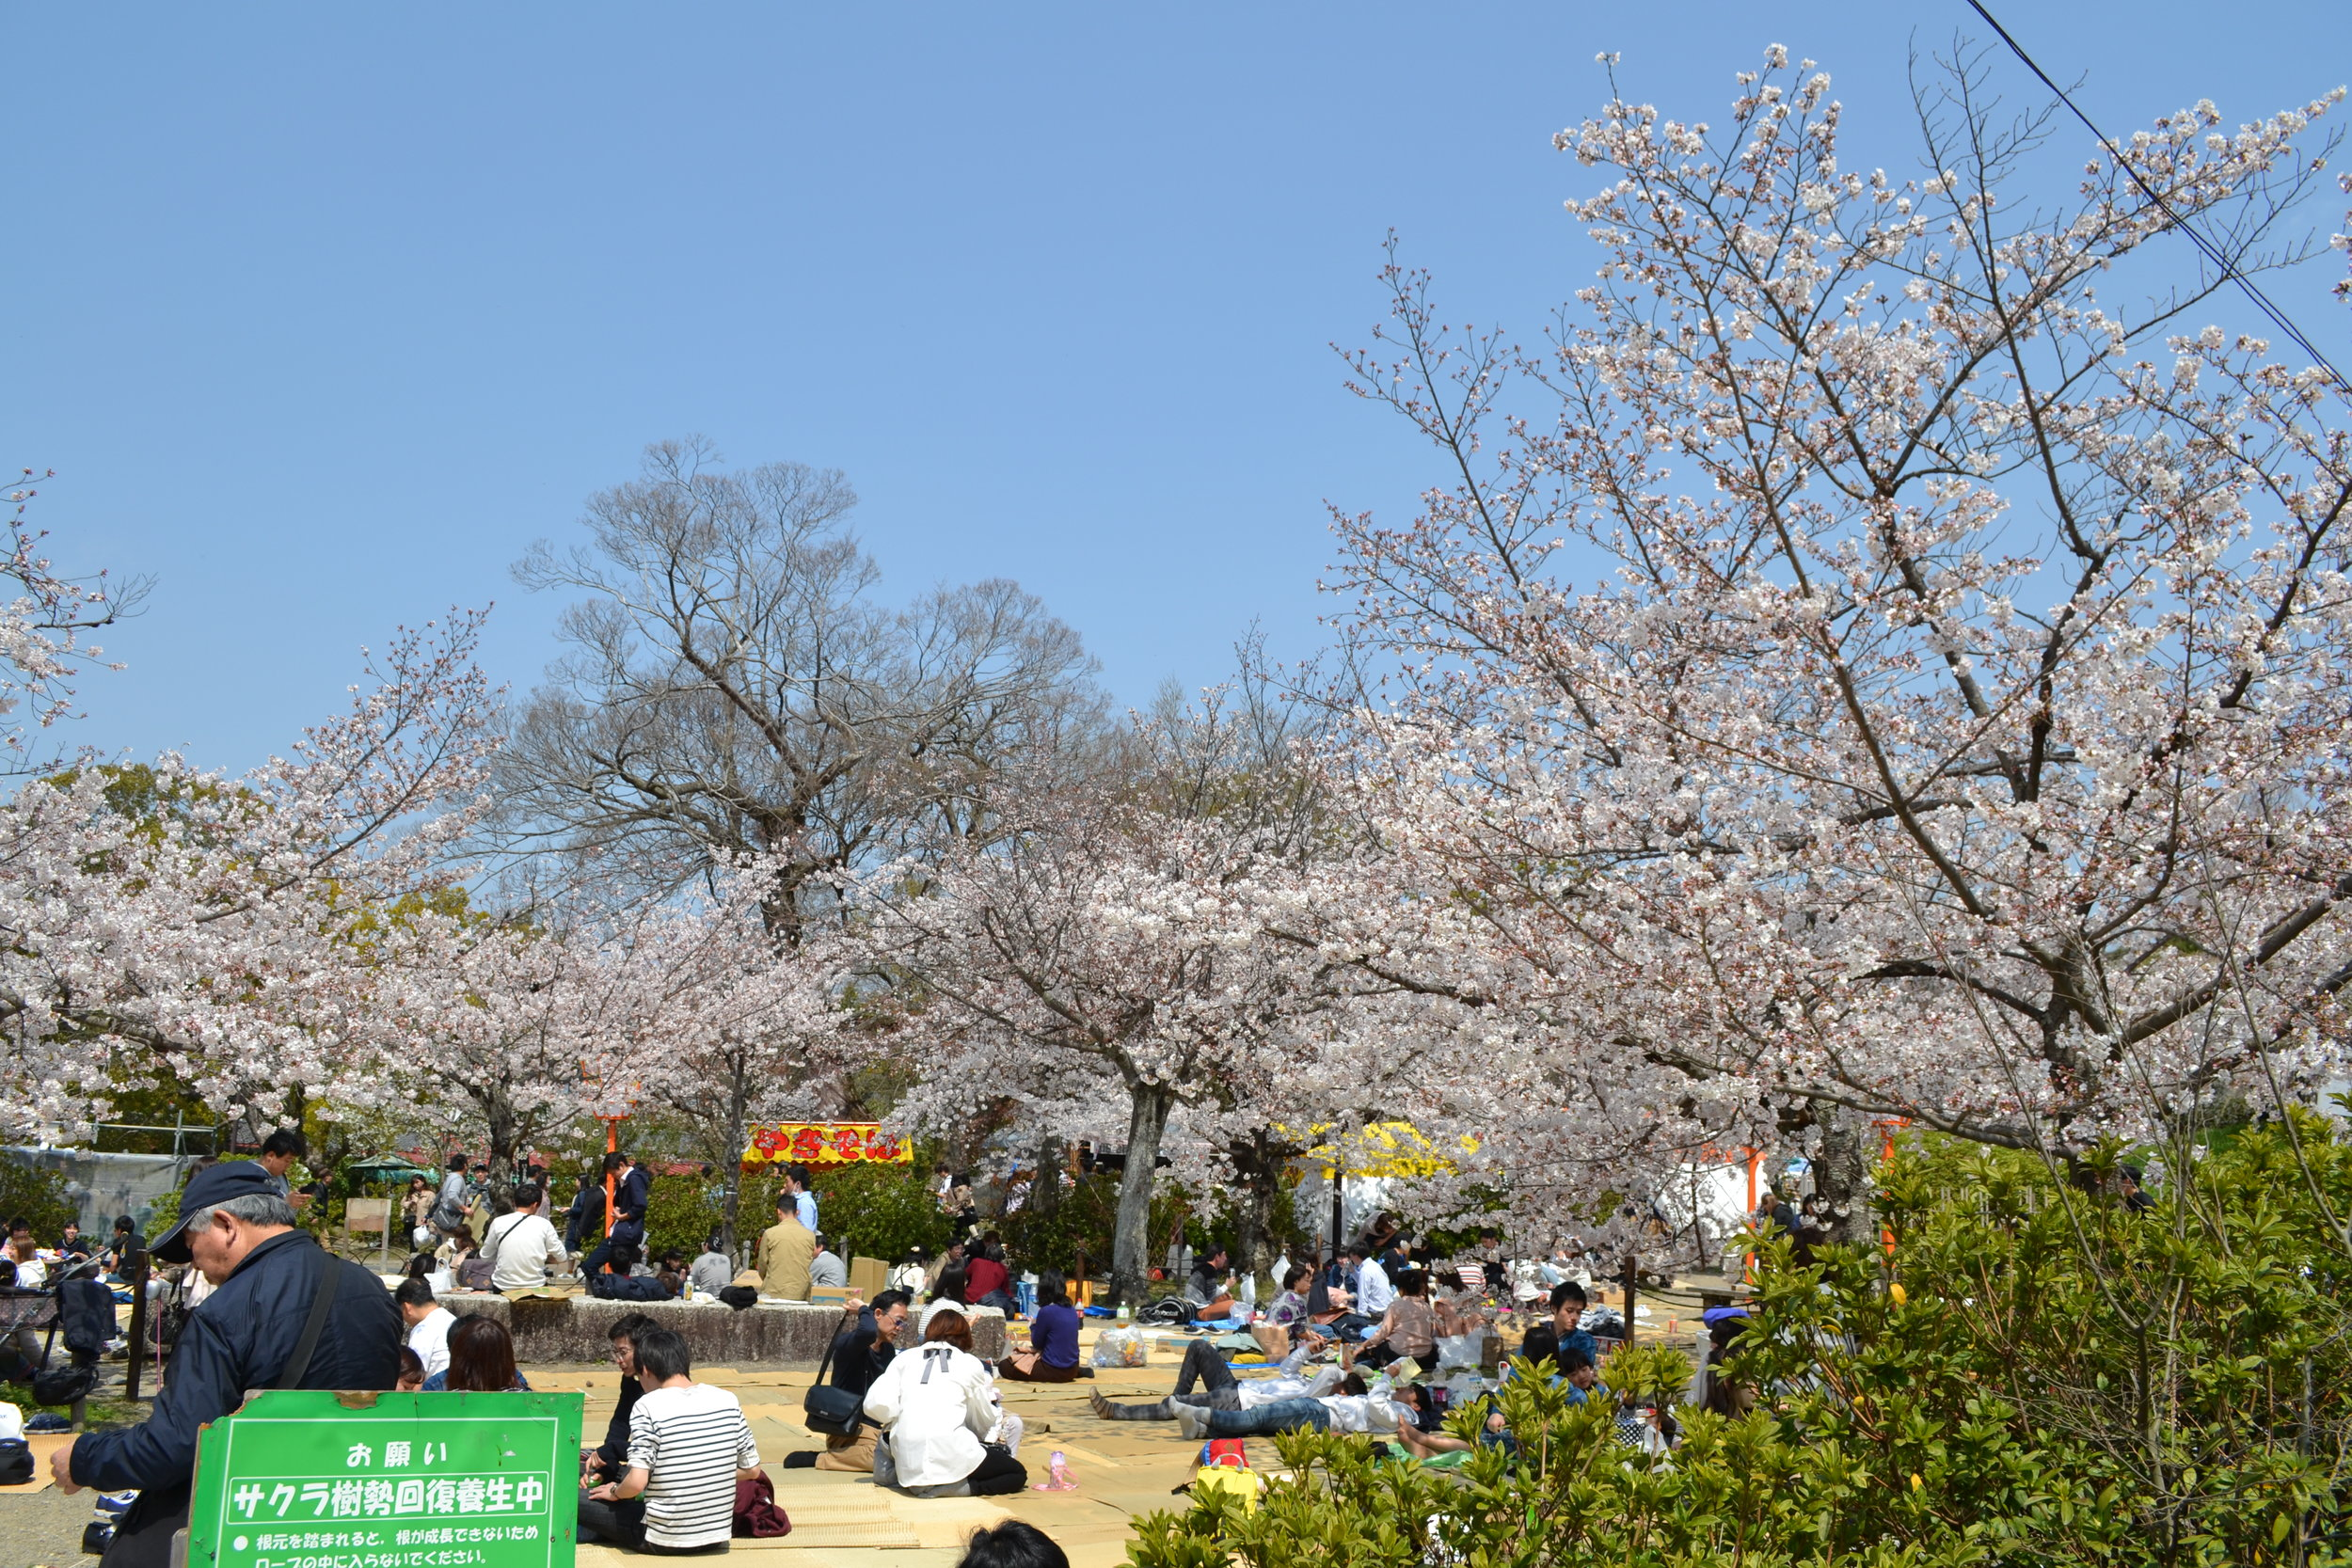 A popular activity to do during the cherry blossom season,  hanami : many picnics going on under the cherry blossom trees with food you can get beforehand or at the plentiful food stalls near the picnic areas.